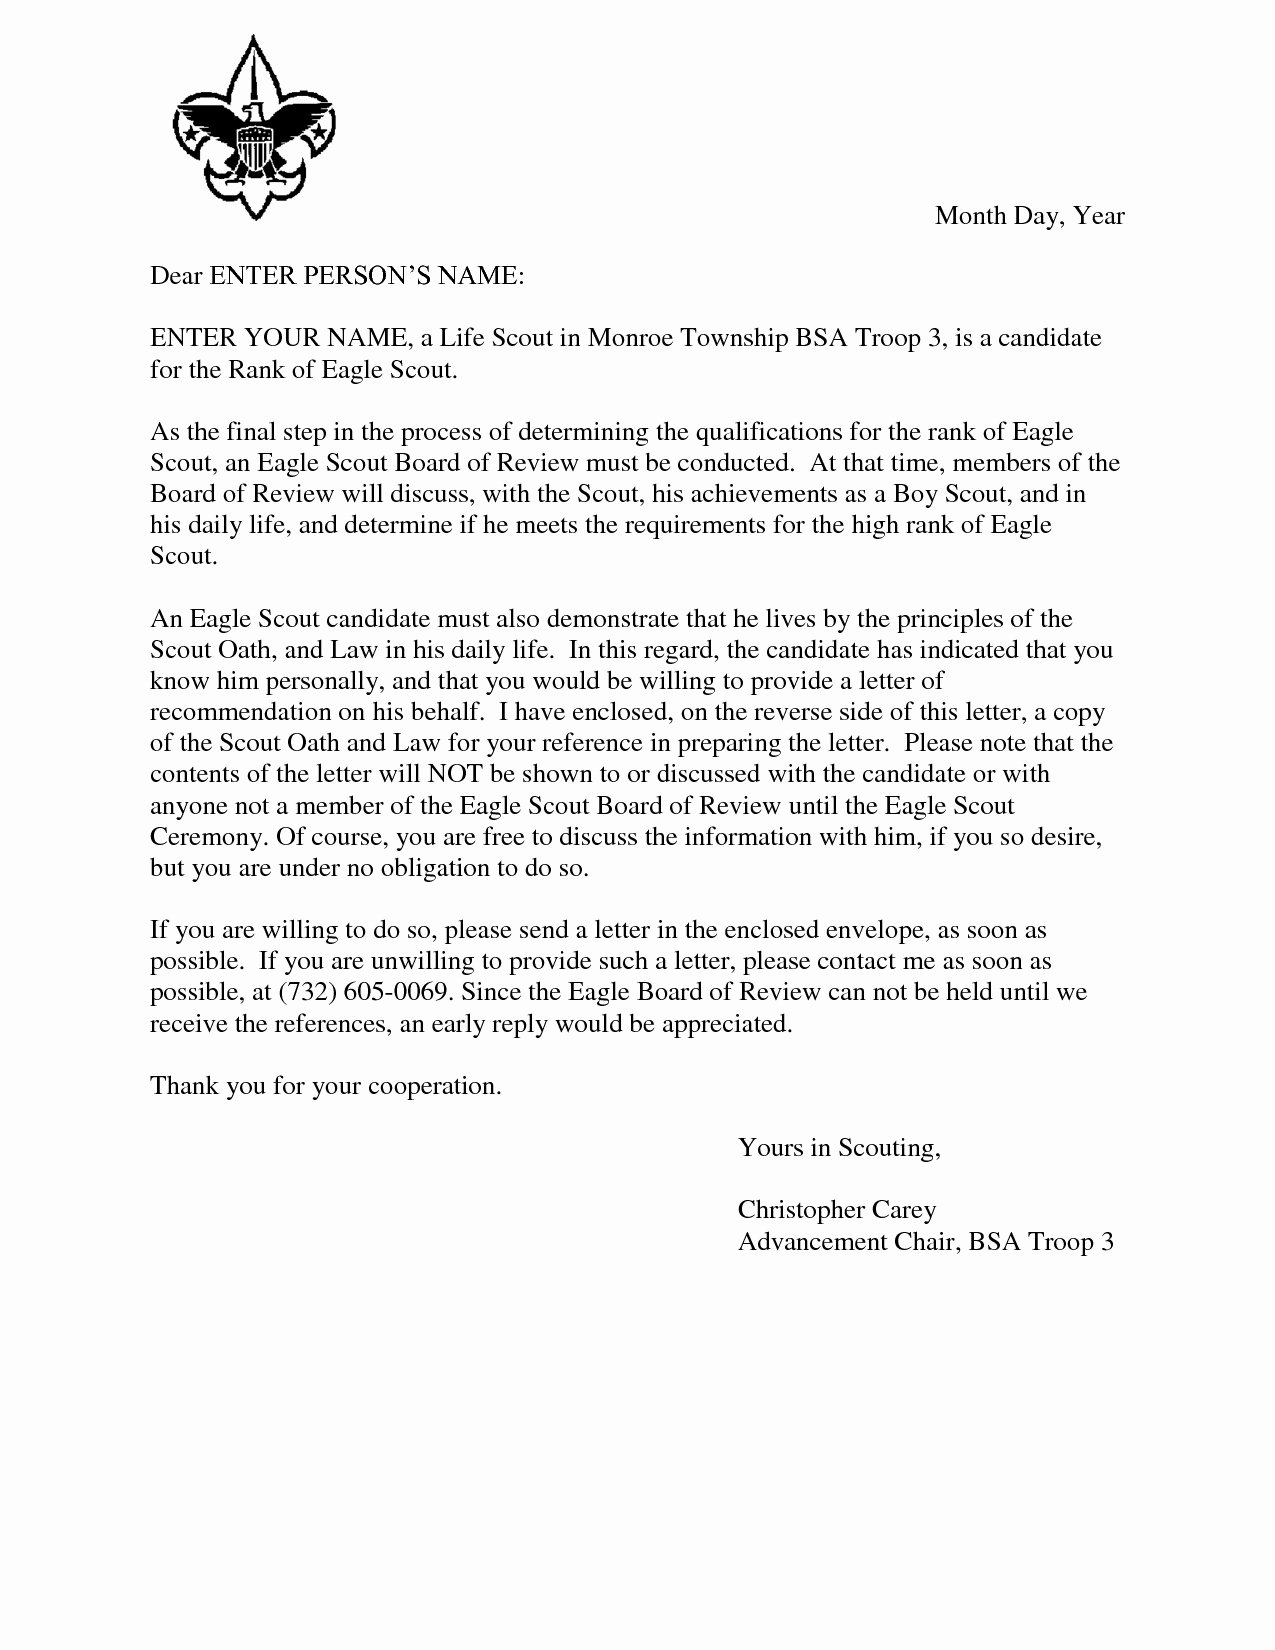 Sample Eagle Scout Recommendation Letter Inspirational Boy Scout Donation Letter Template Samples